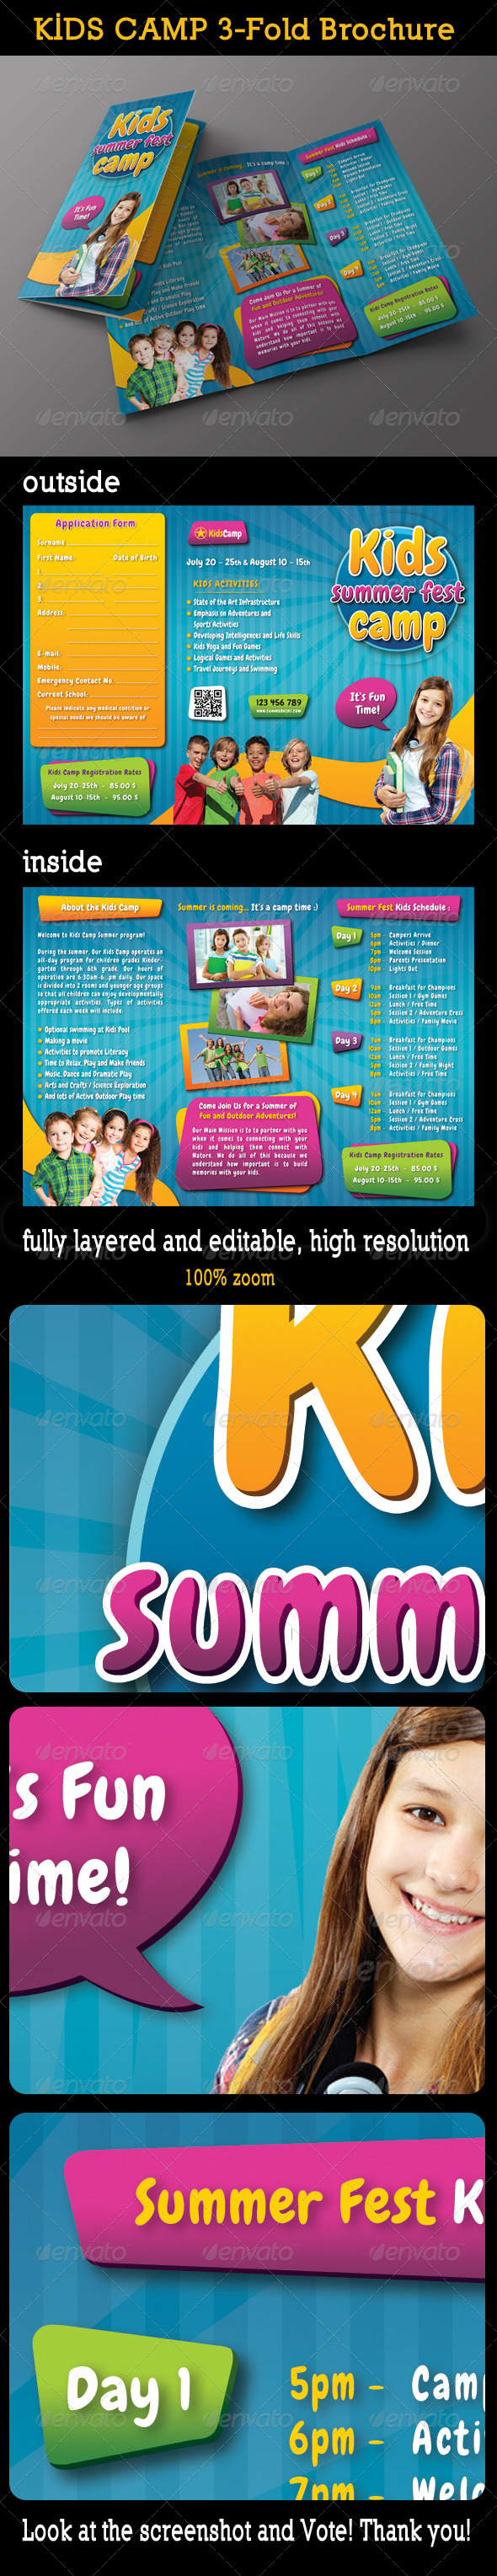 GraphicRiver Kids Summer Camp 3-Fold Brochure 01 8067850